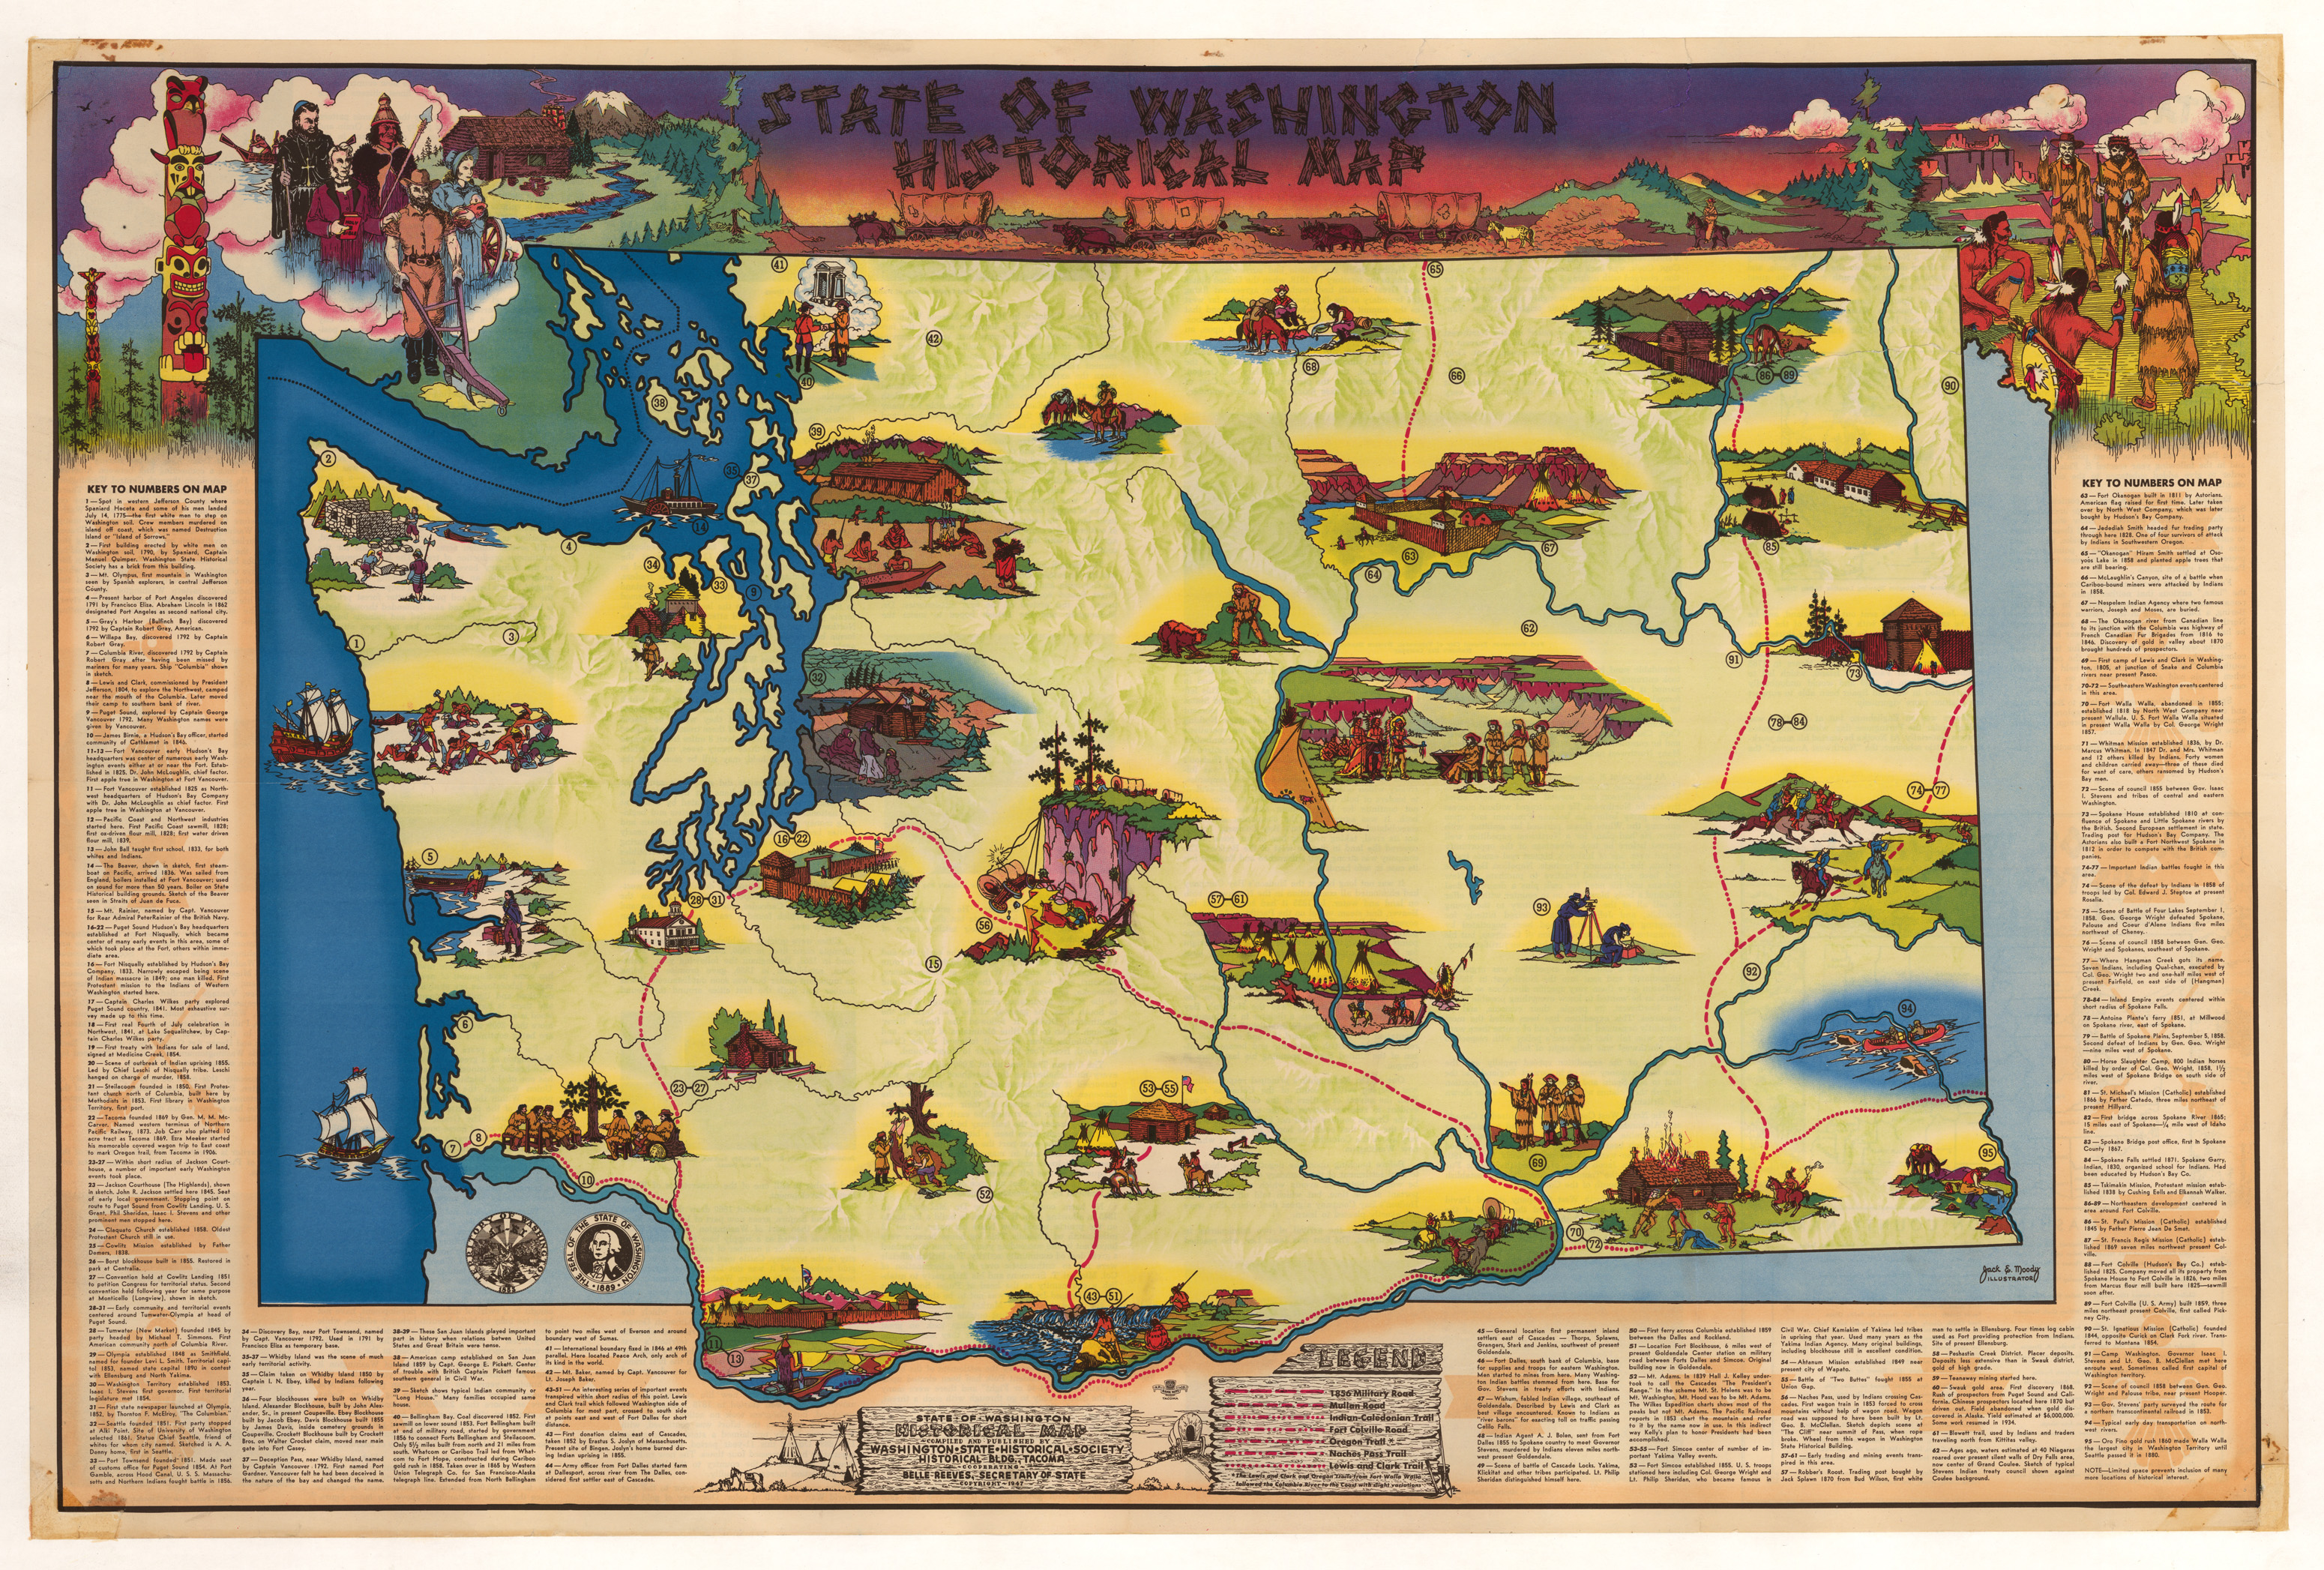 Vintage Pictorial Map of the State of Washington 1947   hjbmaps com     High Resolution Image